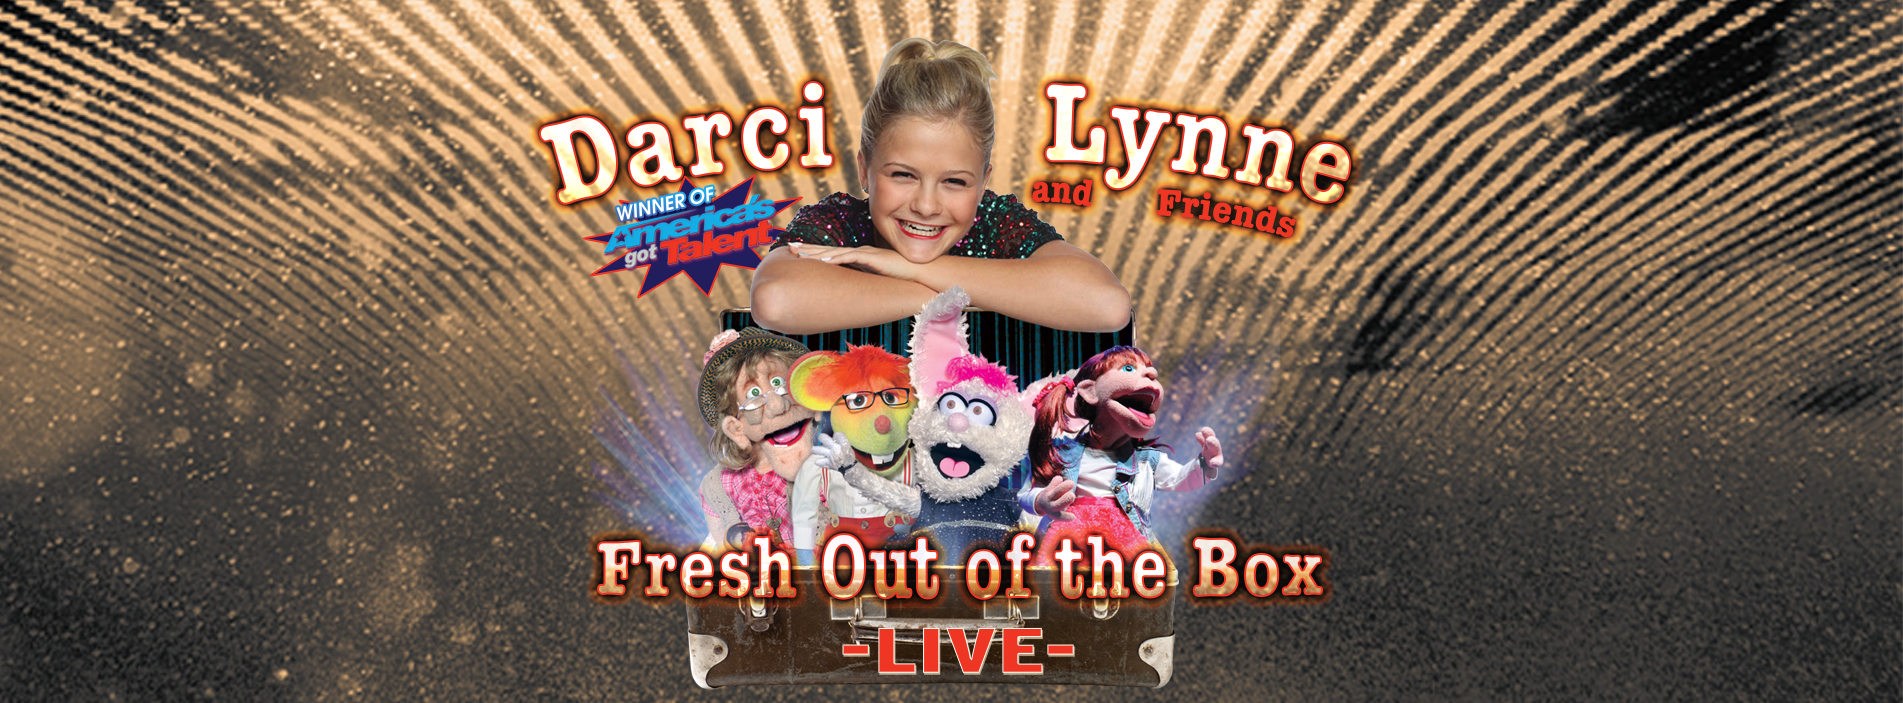 Darci Lynne & Friends - Fresh Out of the Box Tour